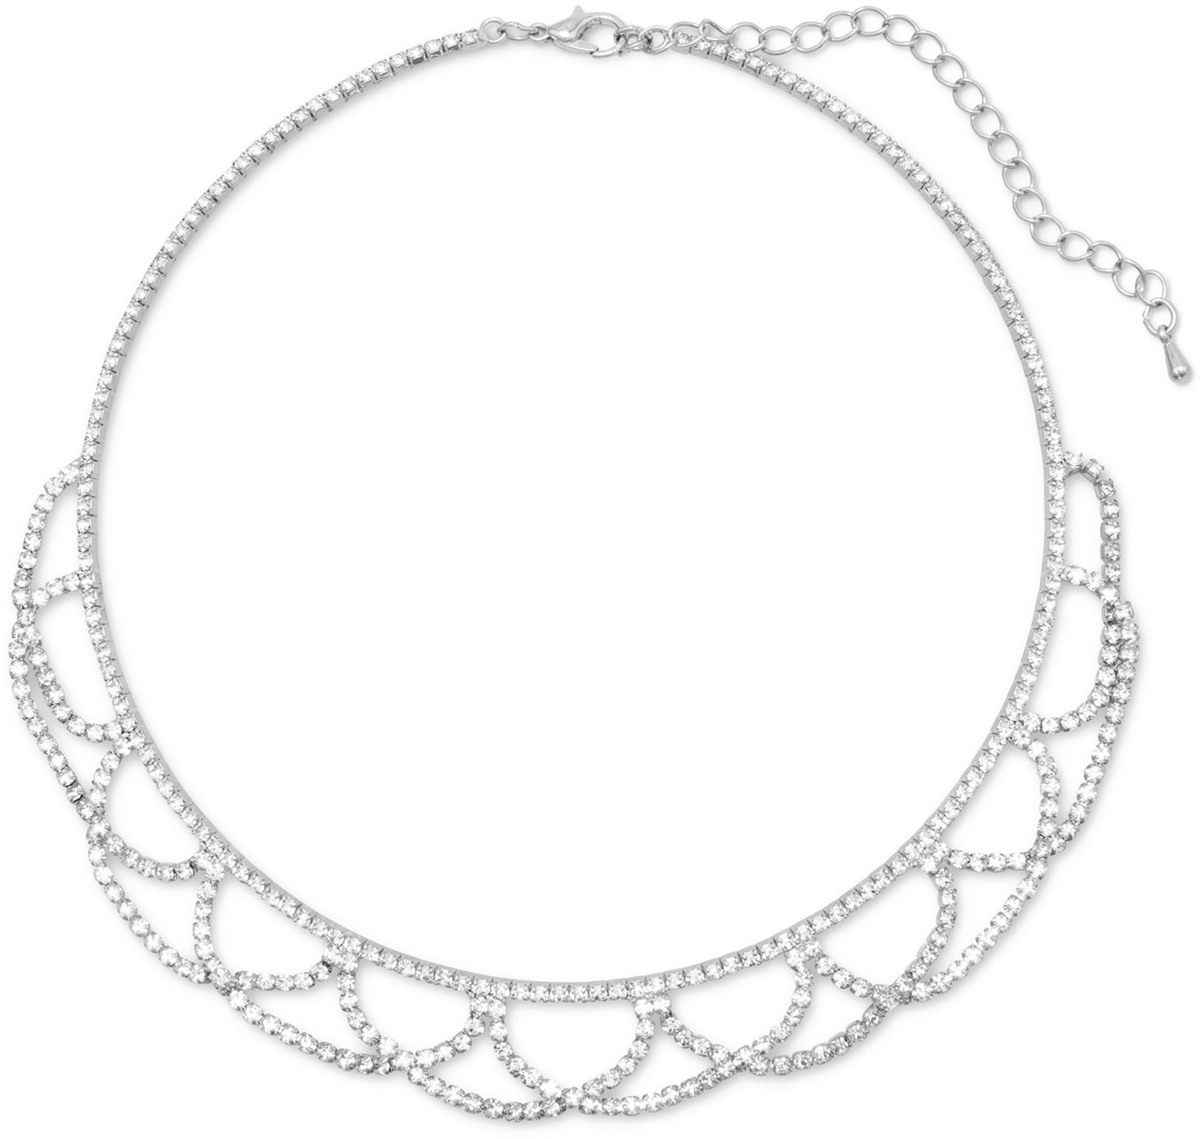 "15"" + 3.5"" Simply Elegant Silver Tone Crystal Lace Fashion Necklace"